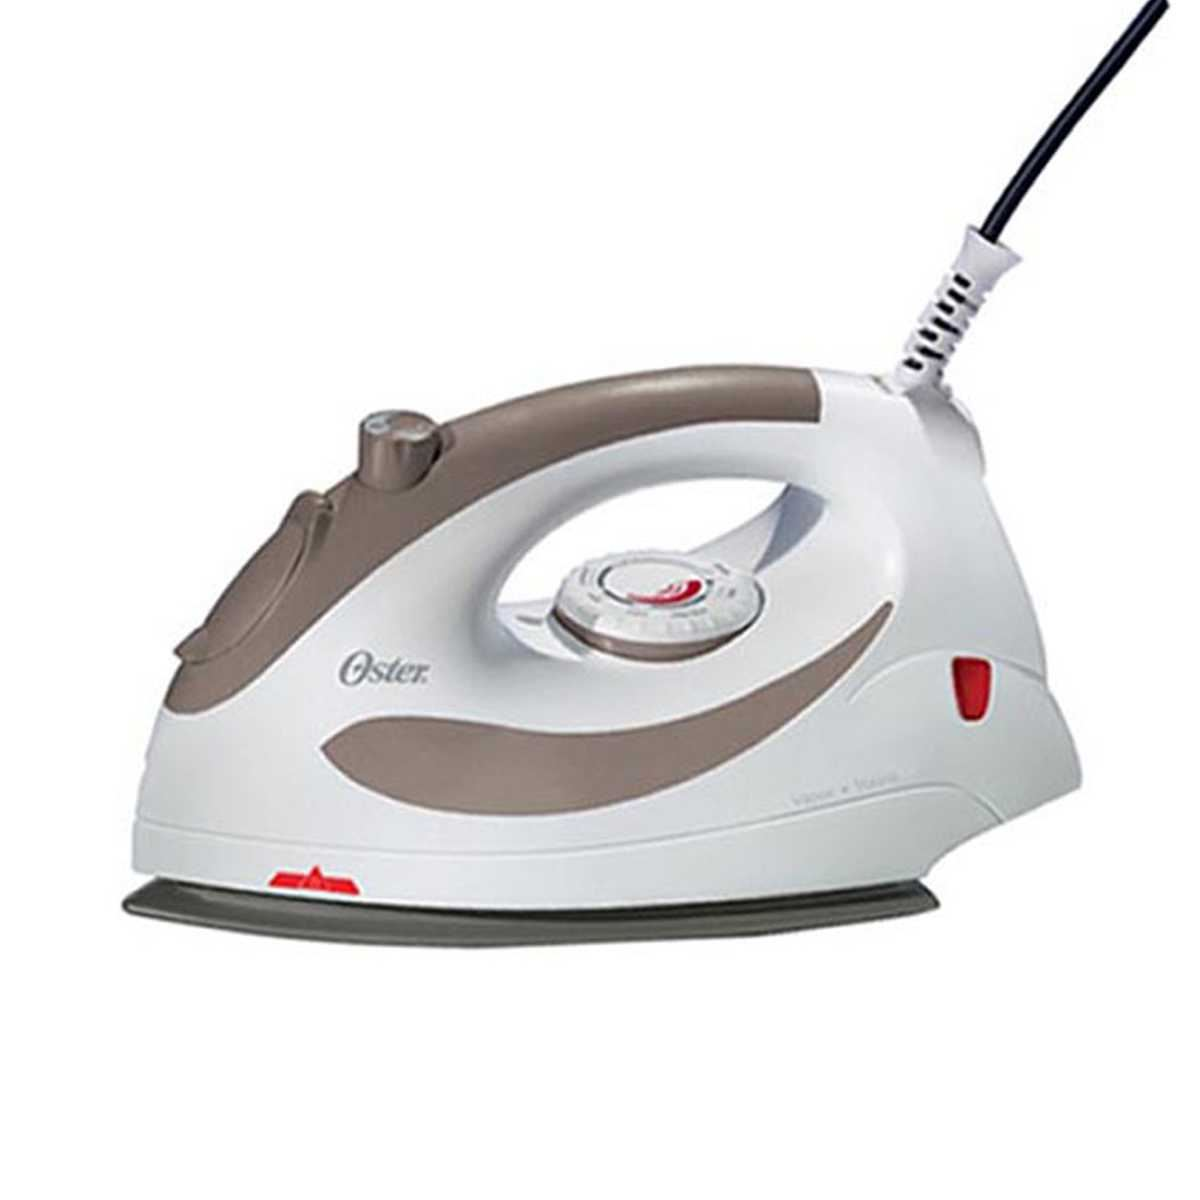 Picture of Oster Steam Iron 5104